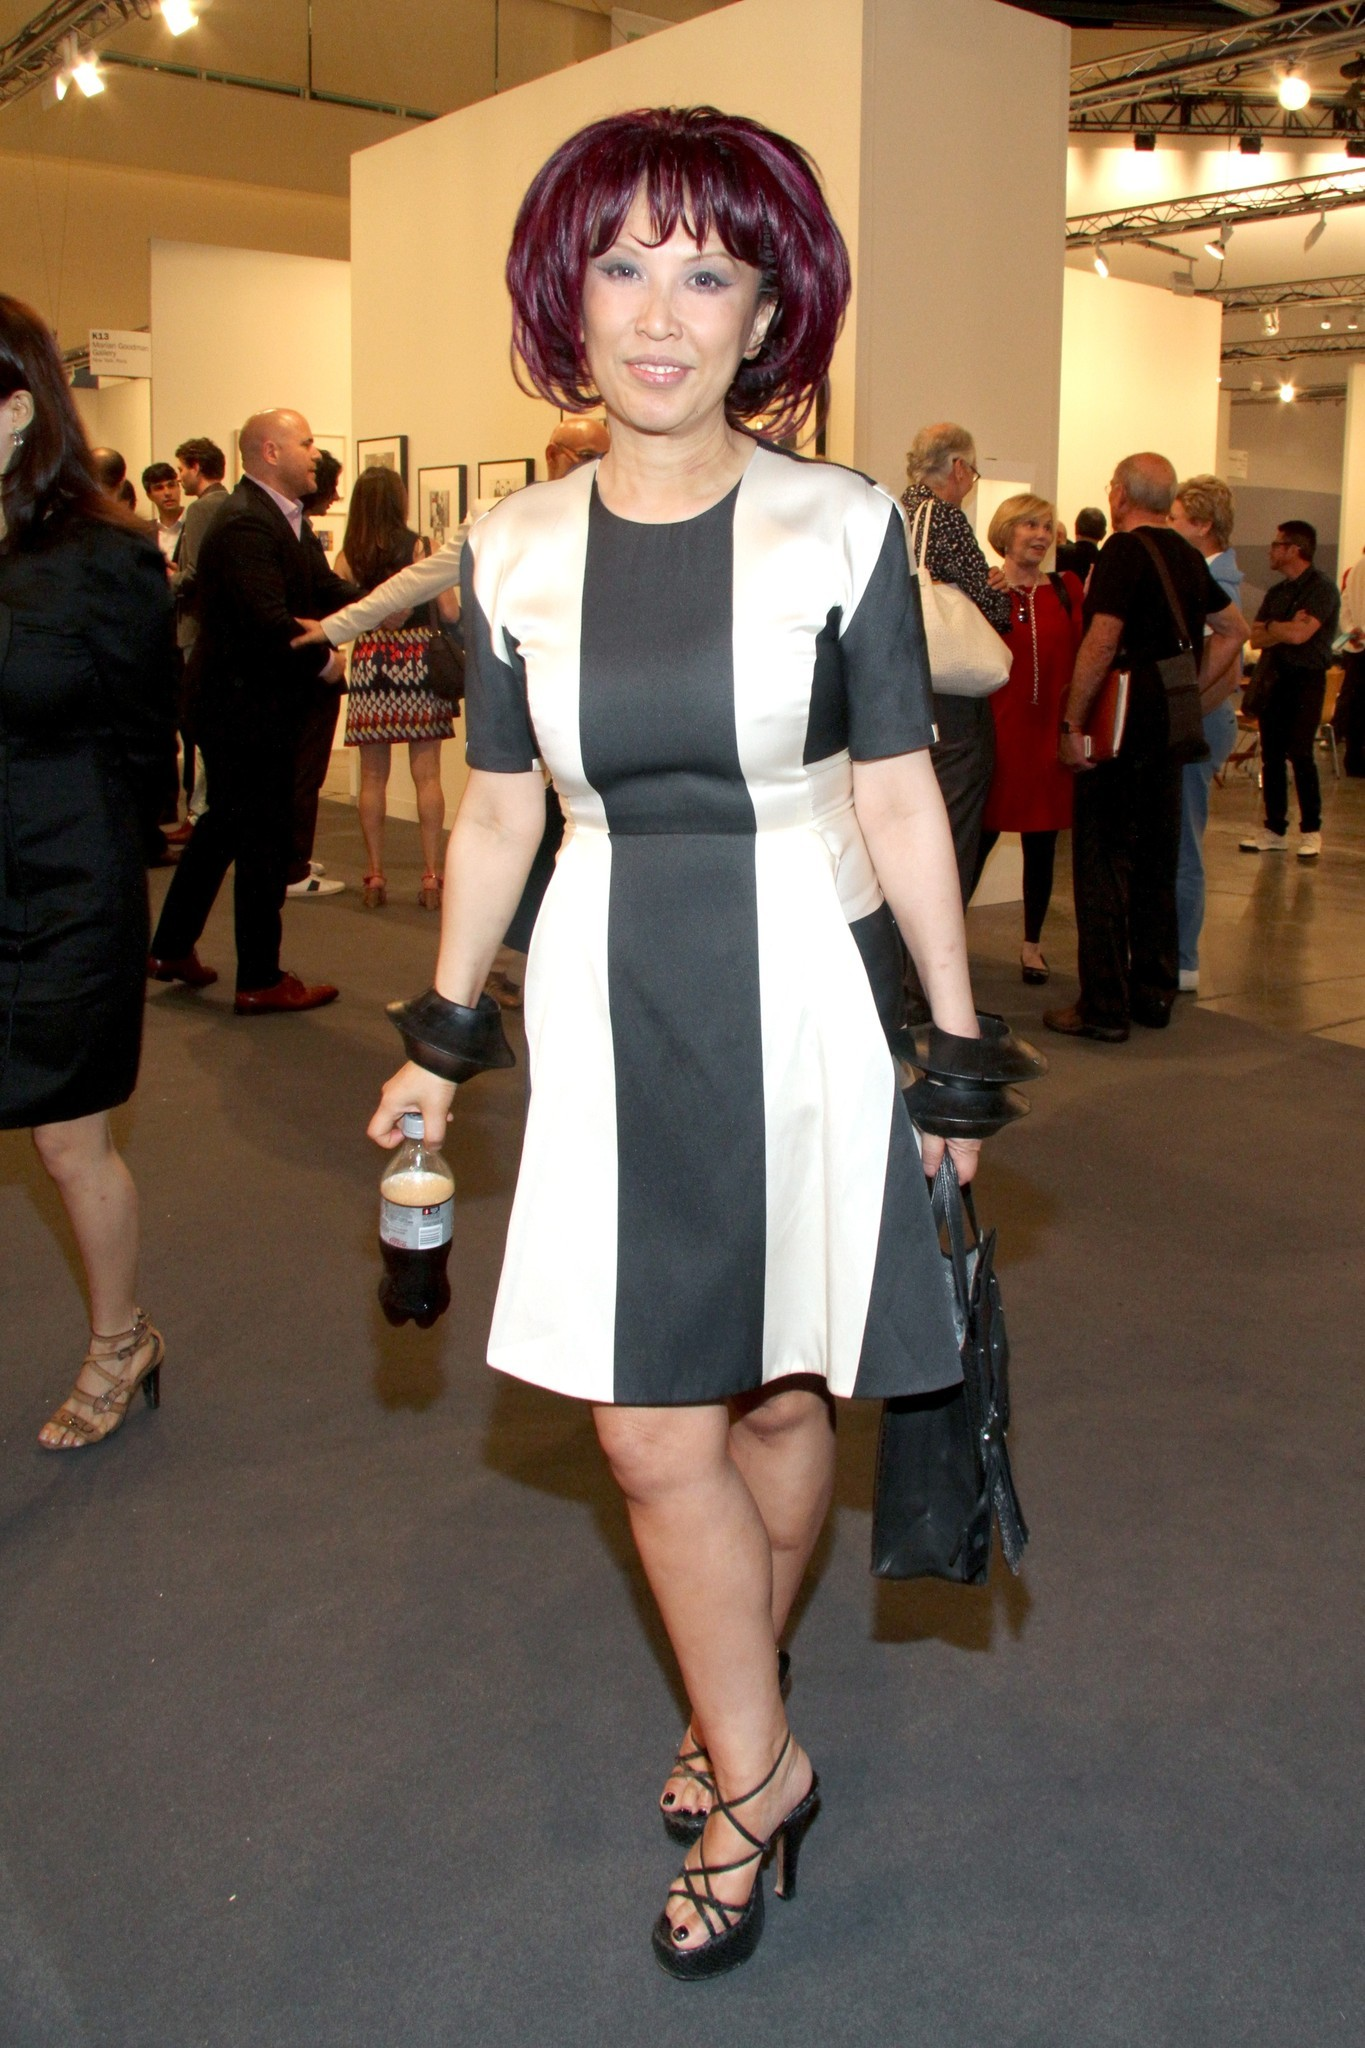 PHOTOS: Artists, celebs at Art Basel - Pearl Lam